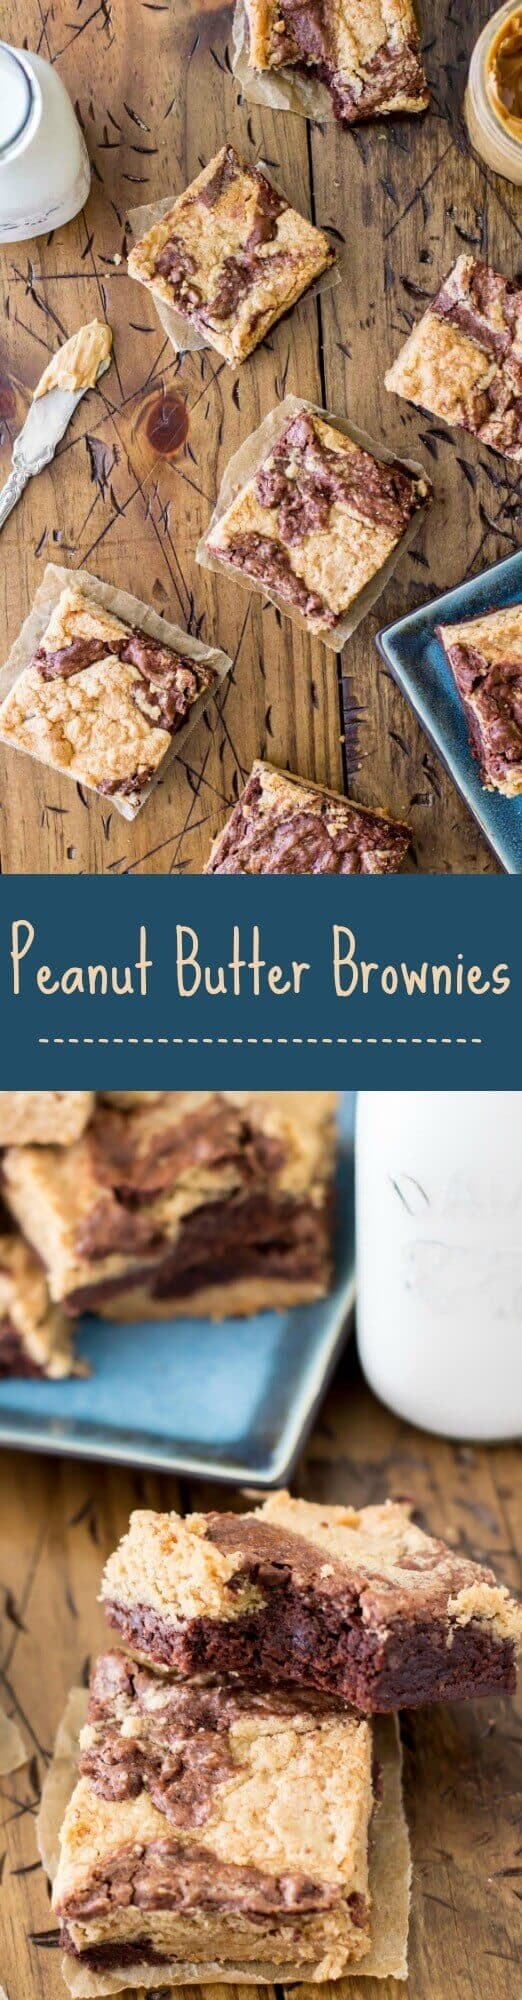 Peanut Butter Brownies -- via Sugar Spun Run